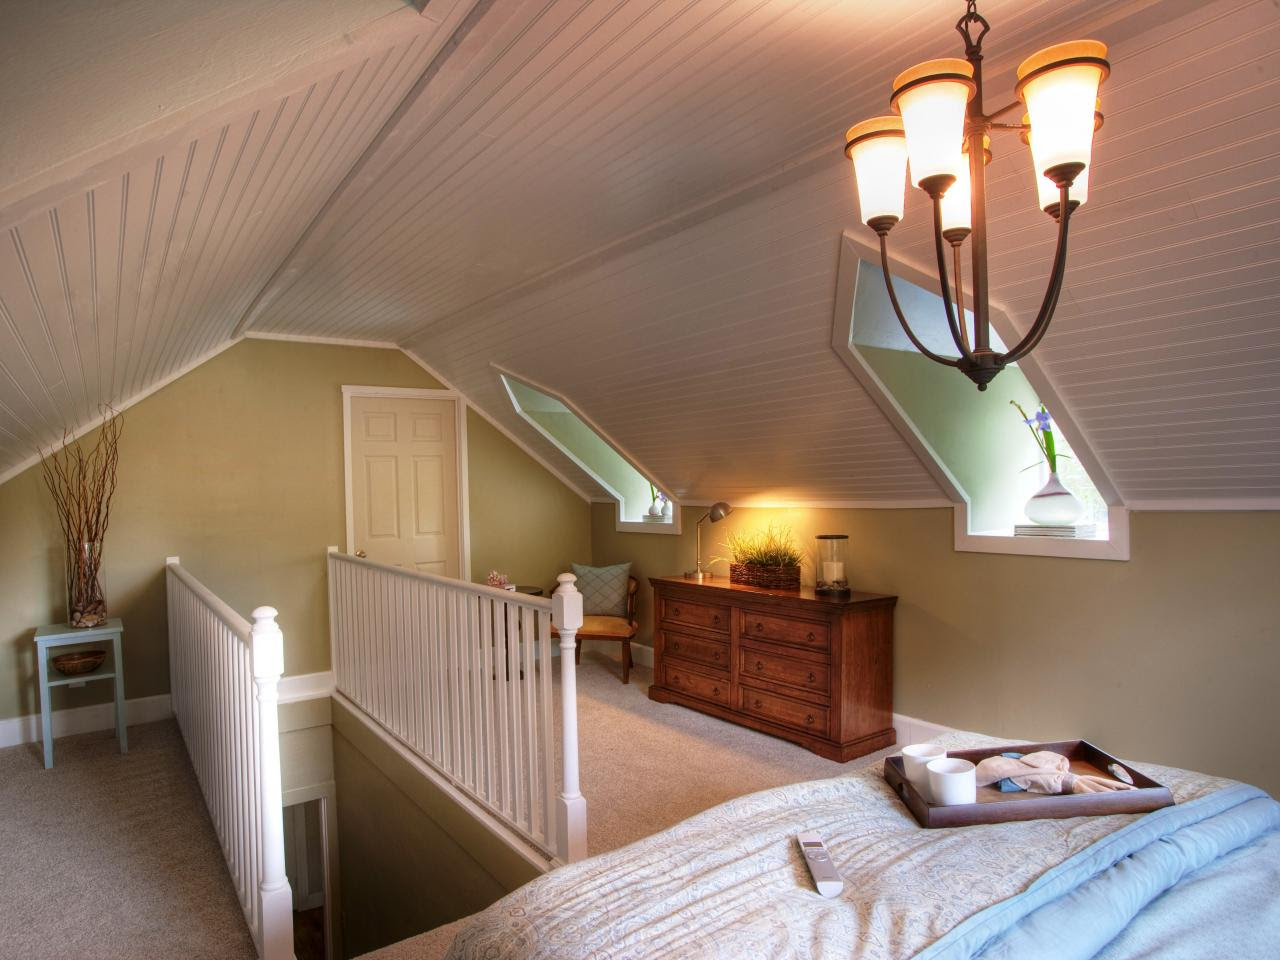 Remodeling Attic With Low Ceiling • Attic Ideas